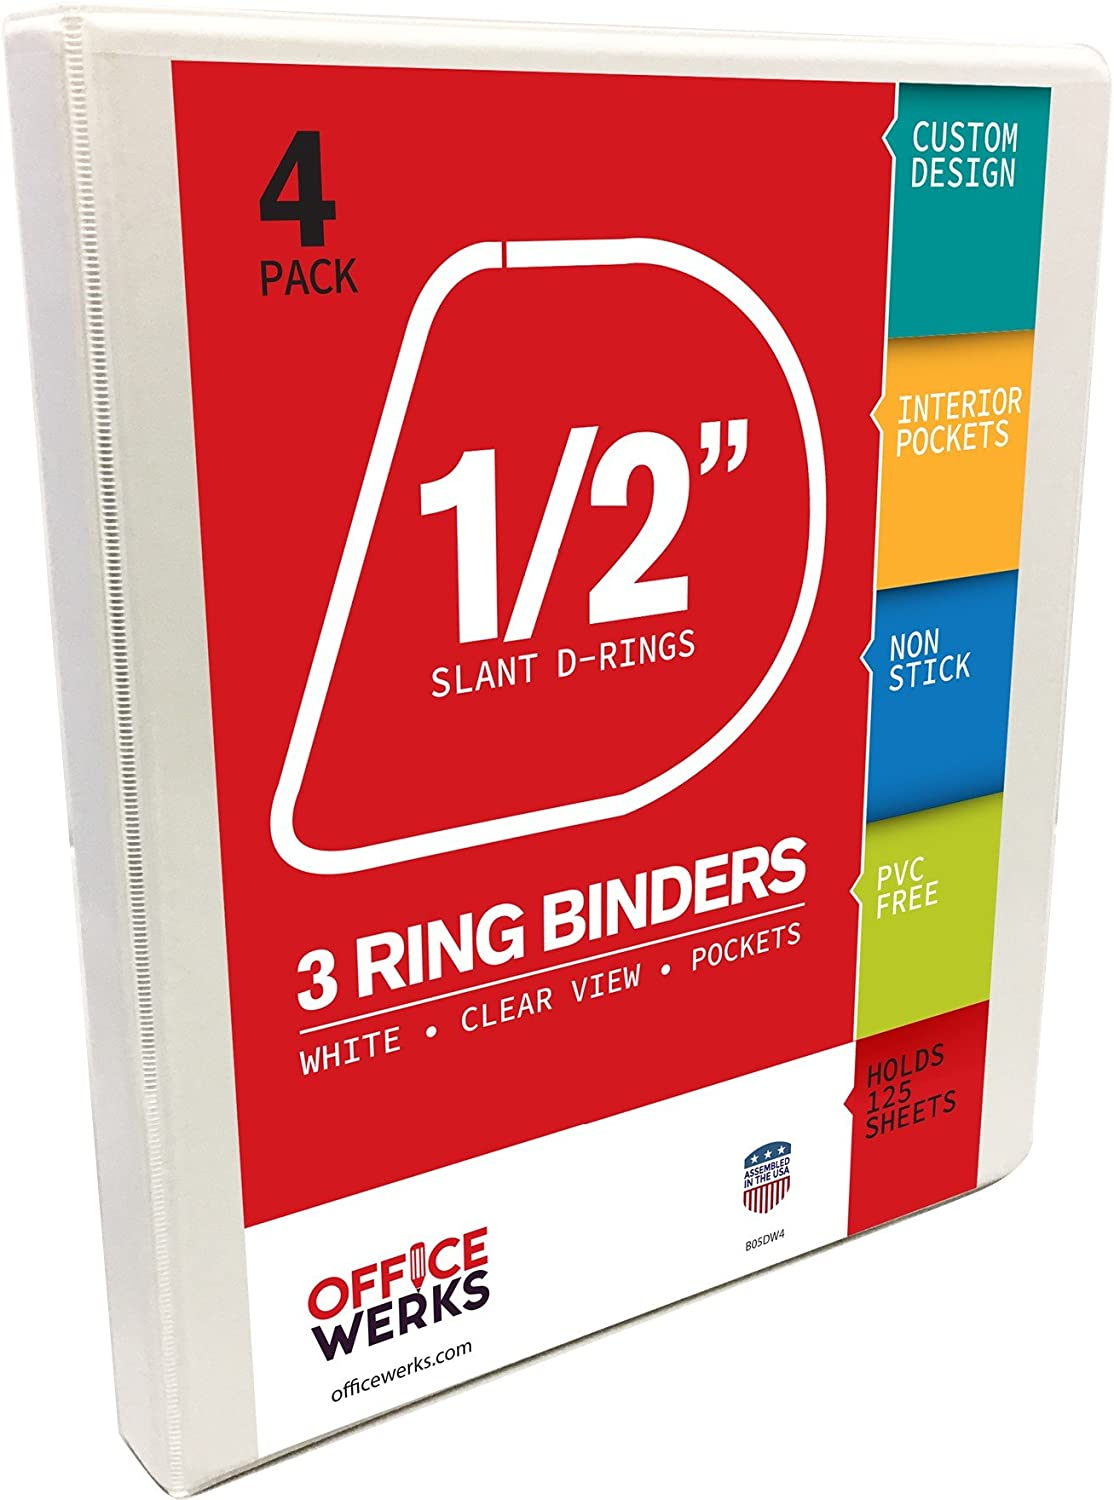 3 Ring Binders, 0.5 Inch Slant-D Rings, White, 4 Pack, Clear View, Pockets : Office Products